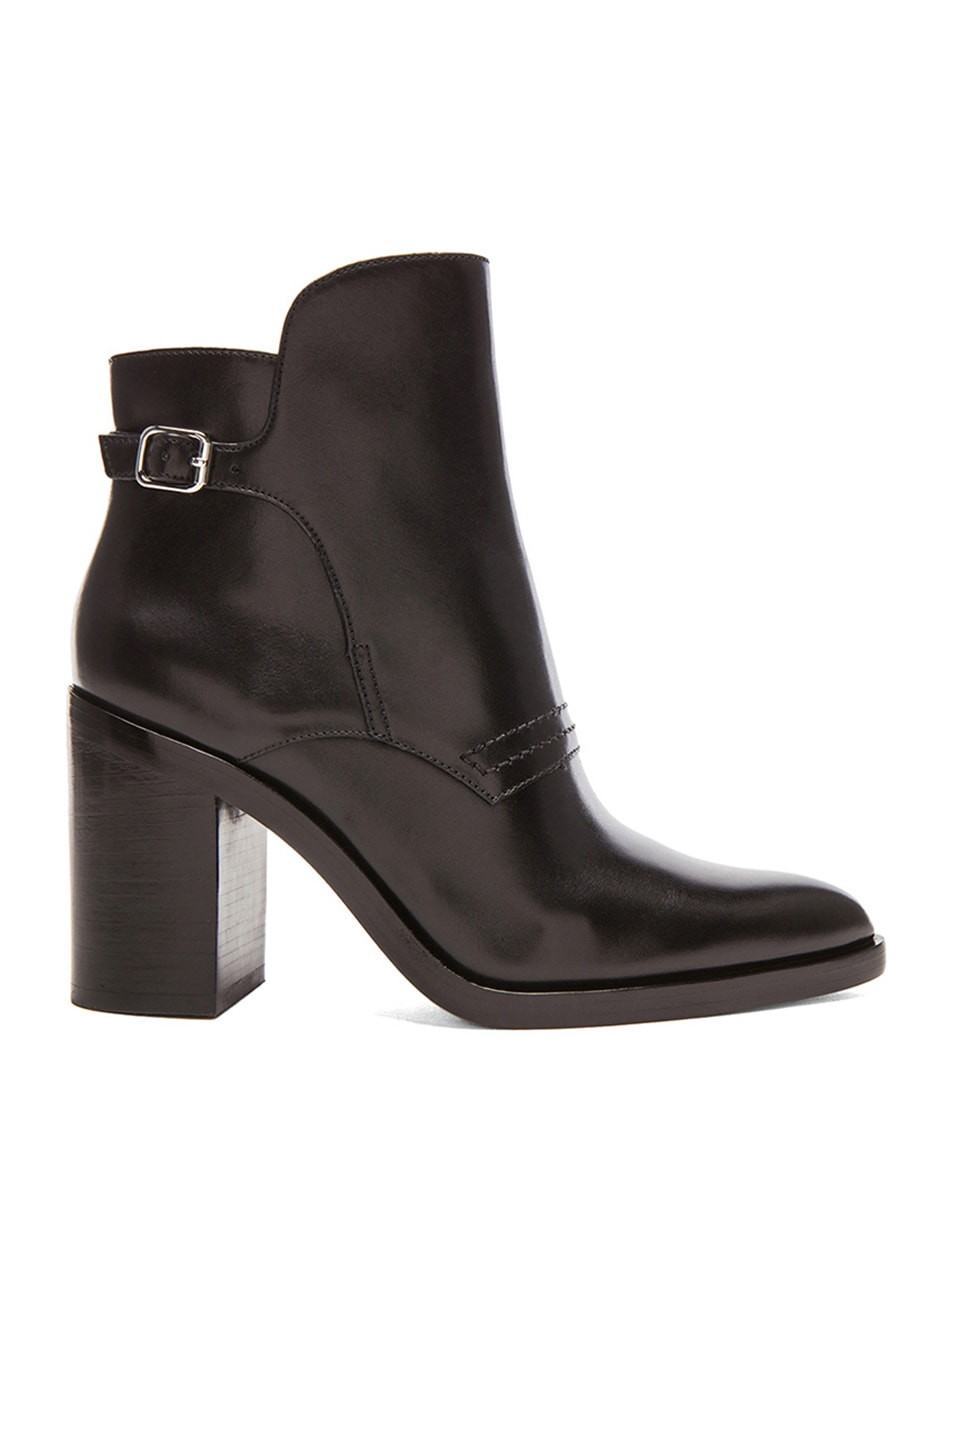 Image 1 of Alexander Wang Clarice Leather Ankle Booties in Black